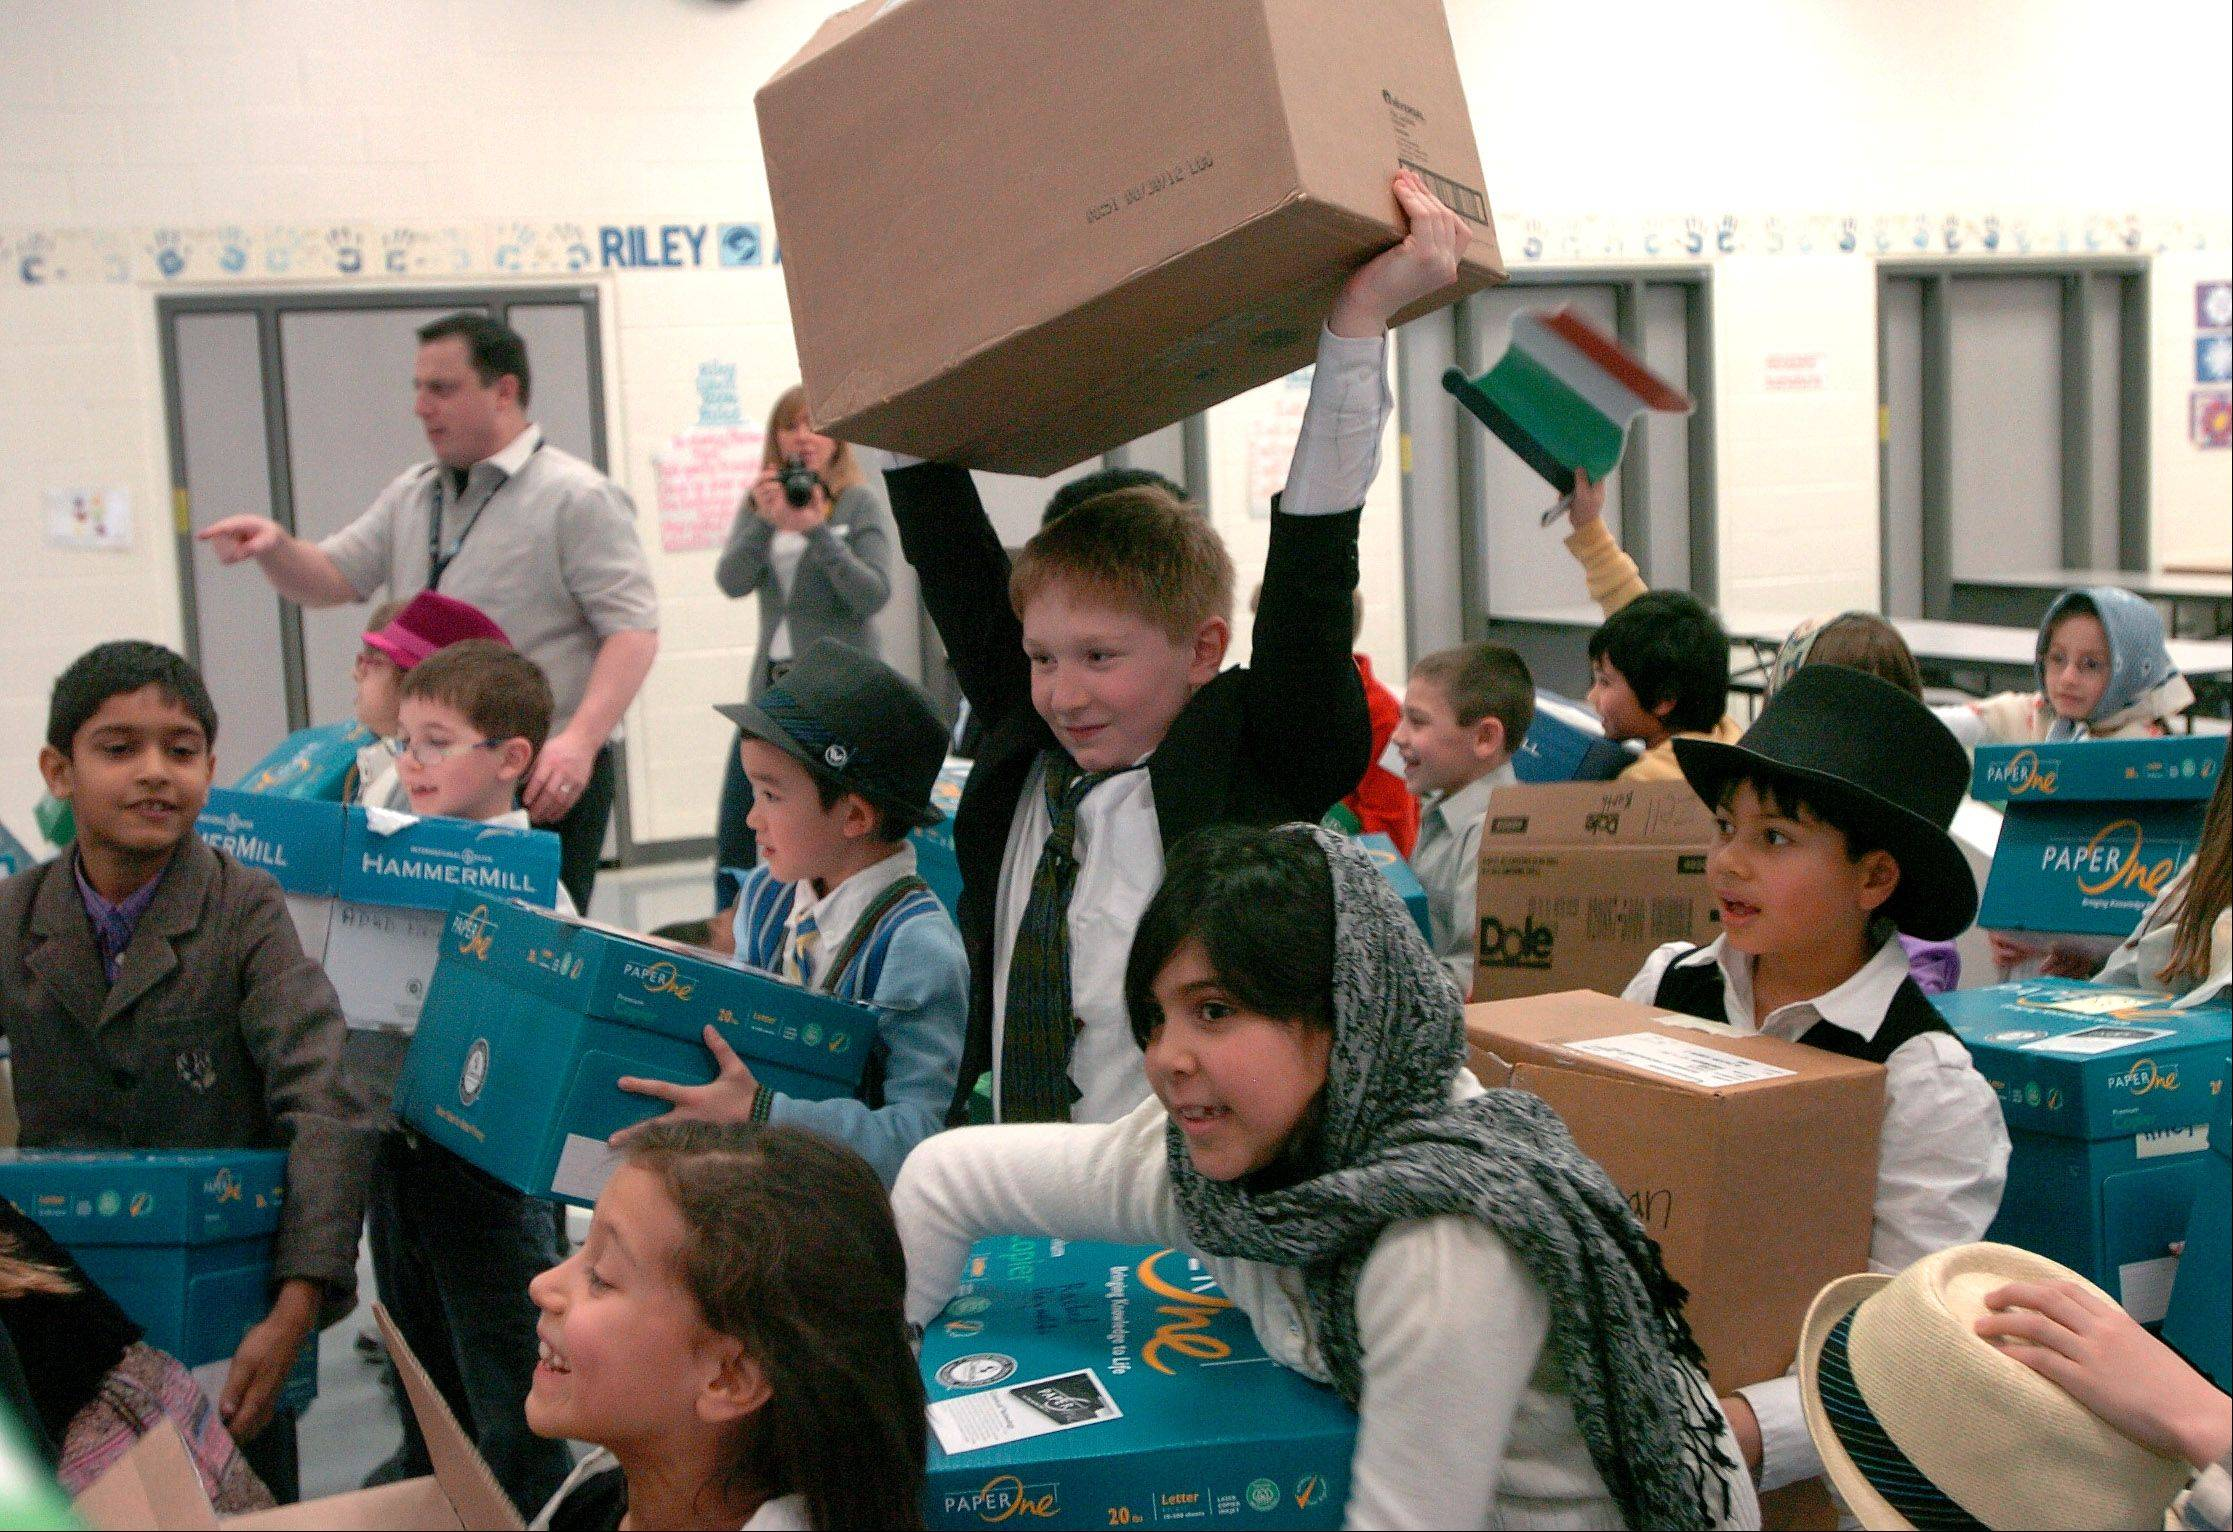 Riley School student Jack Cadre hoists his luggage in the ship's steerage while coming to America, as second-graders recreate the Ellis Island experience earlier in the school year.